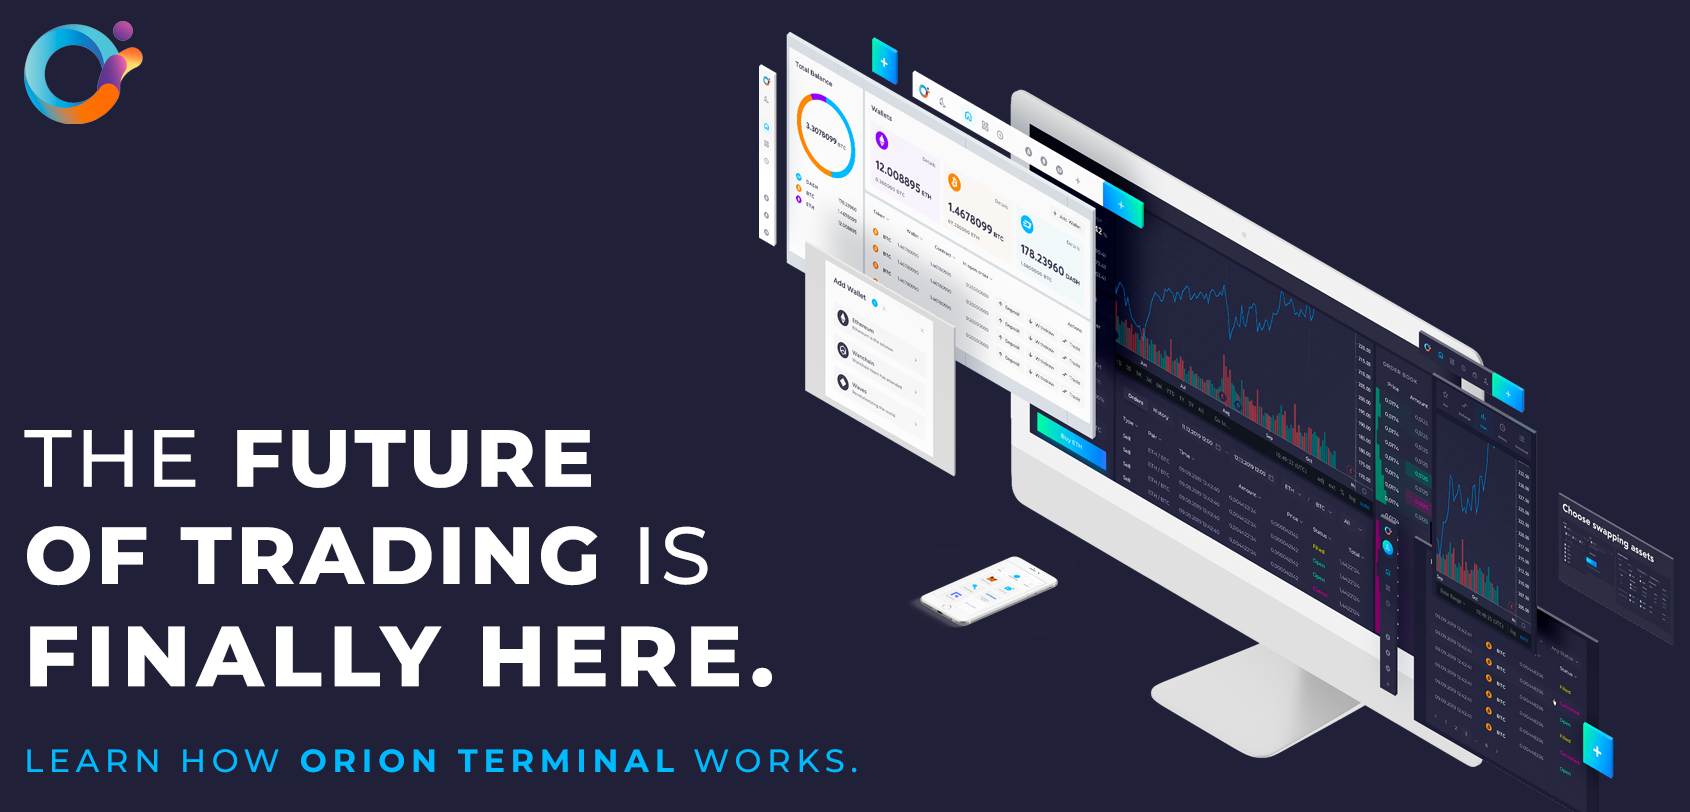 The Future of Trading is Here.